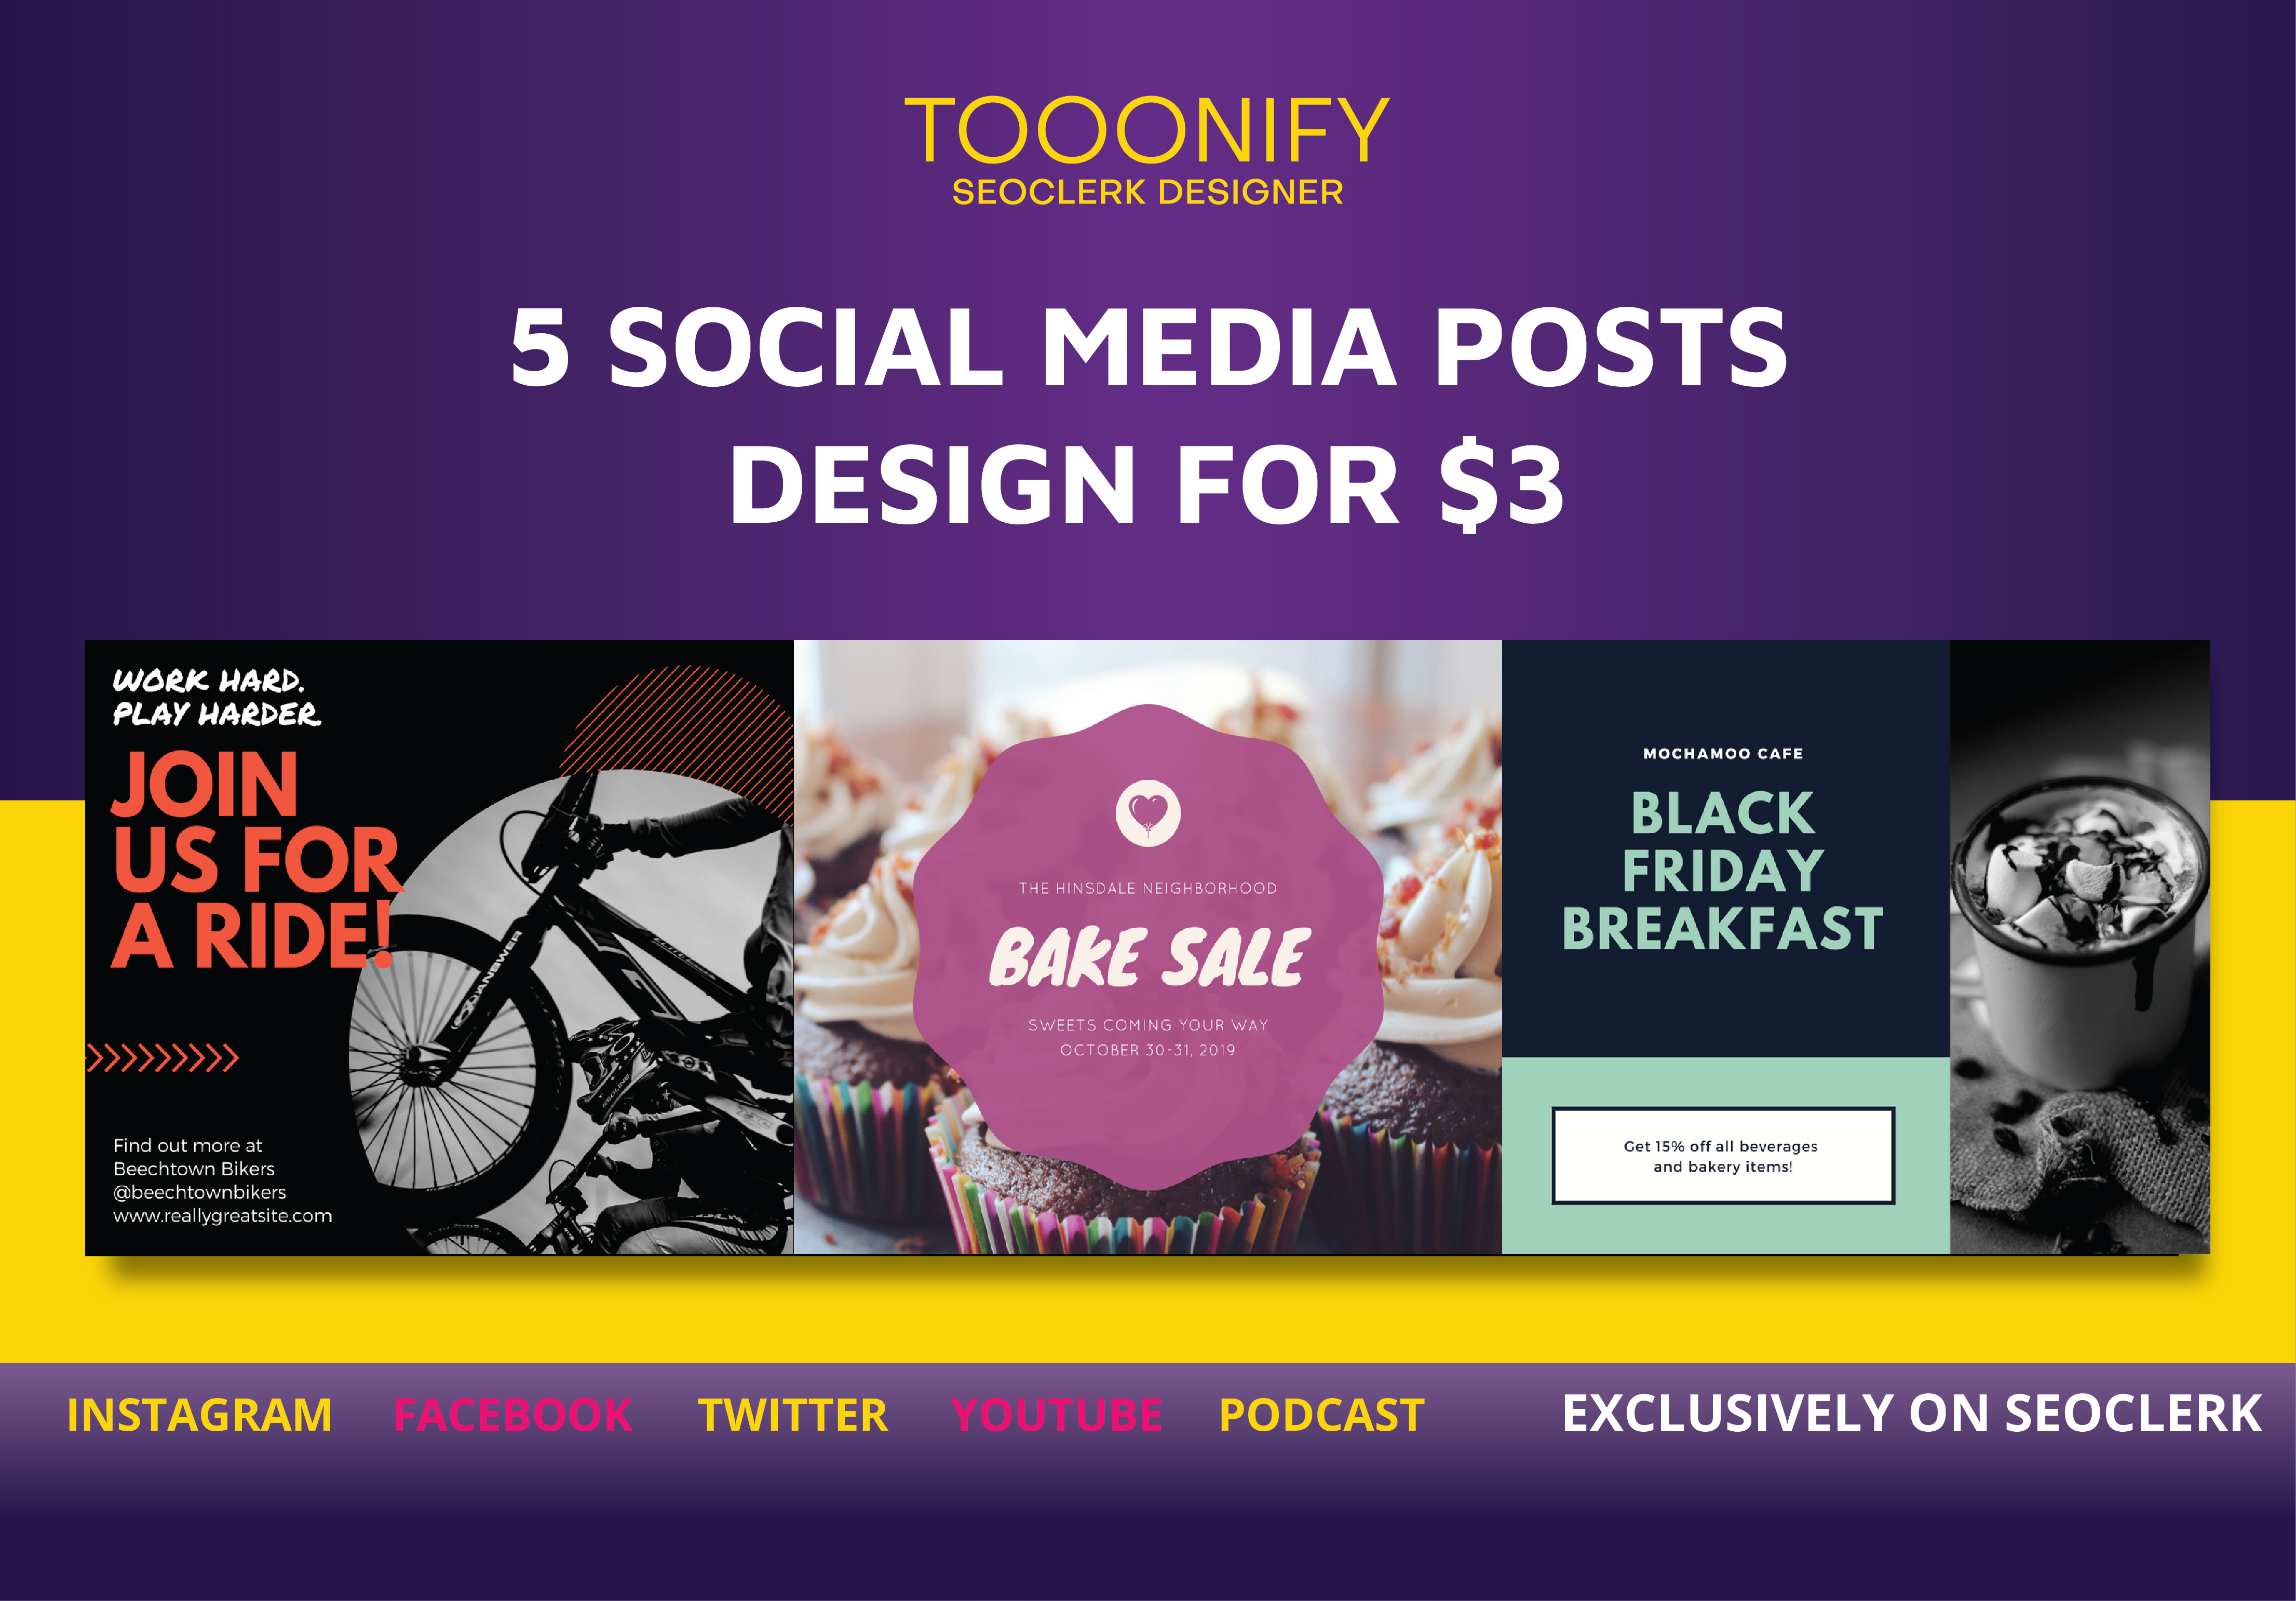 I will design 5 creative social media posts